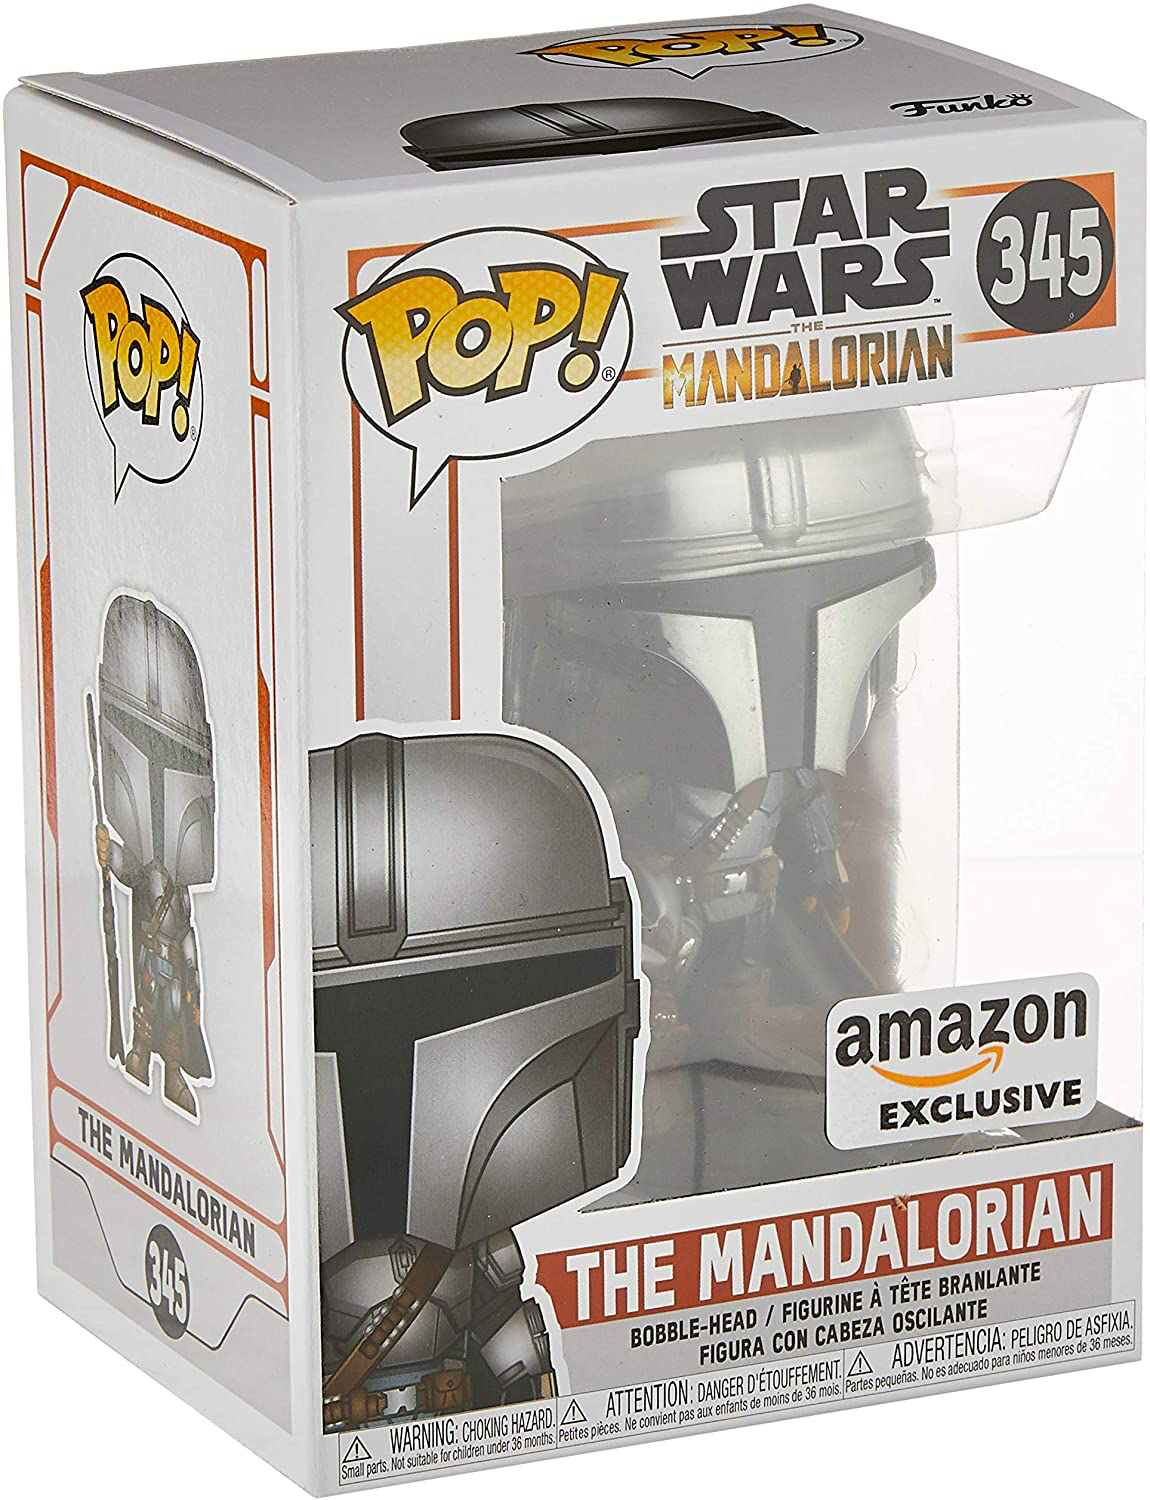 TM Mando (Din Djarin) Chrome Bobble Head Toy 1